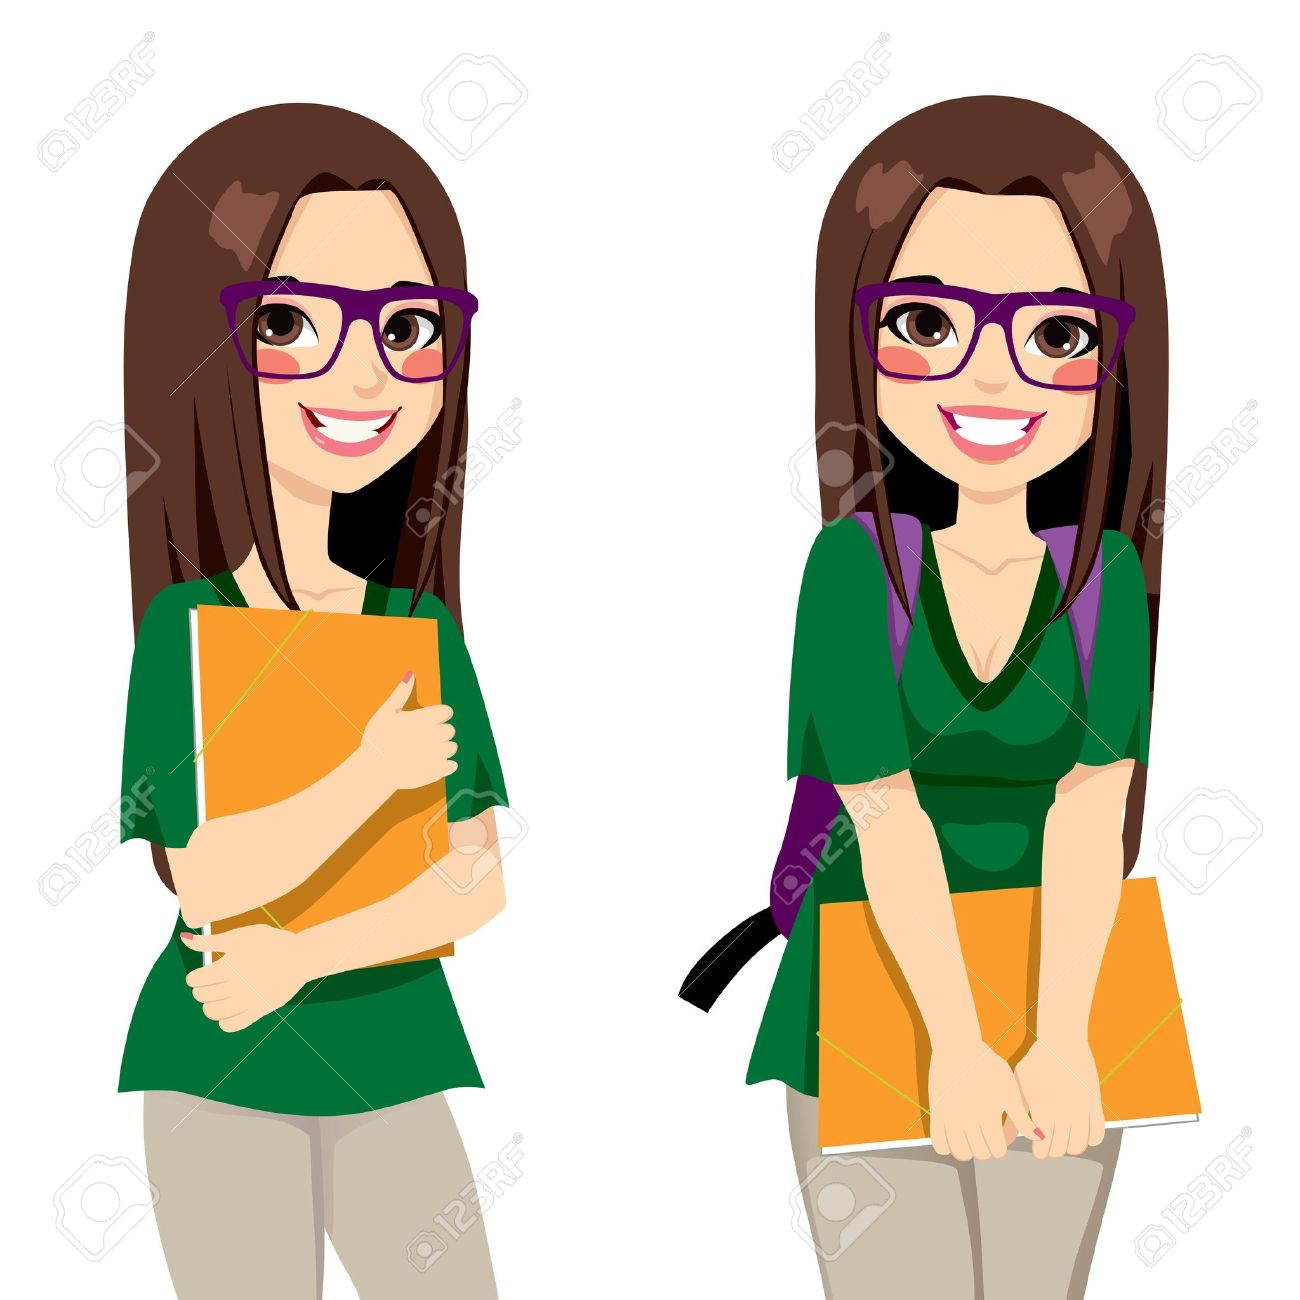 Cute teenage girl student with nerdy style glasses holding an orange folder ready to go back